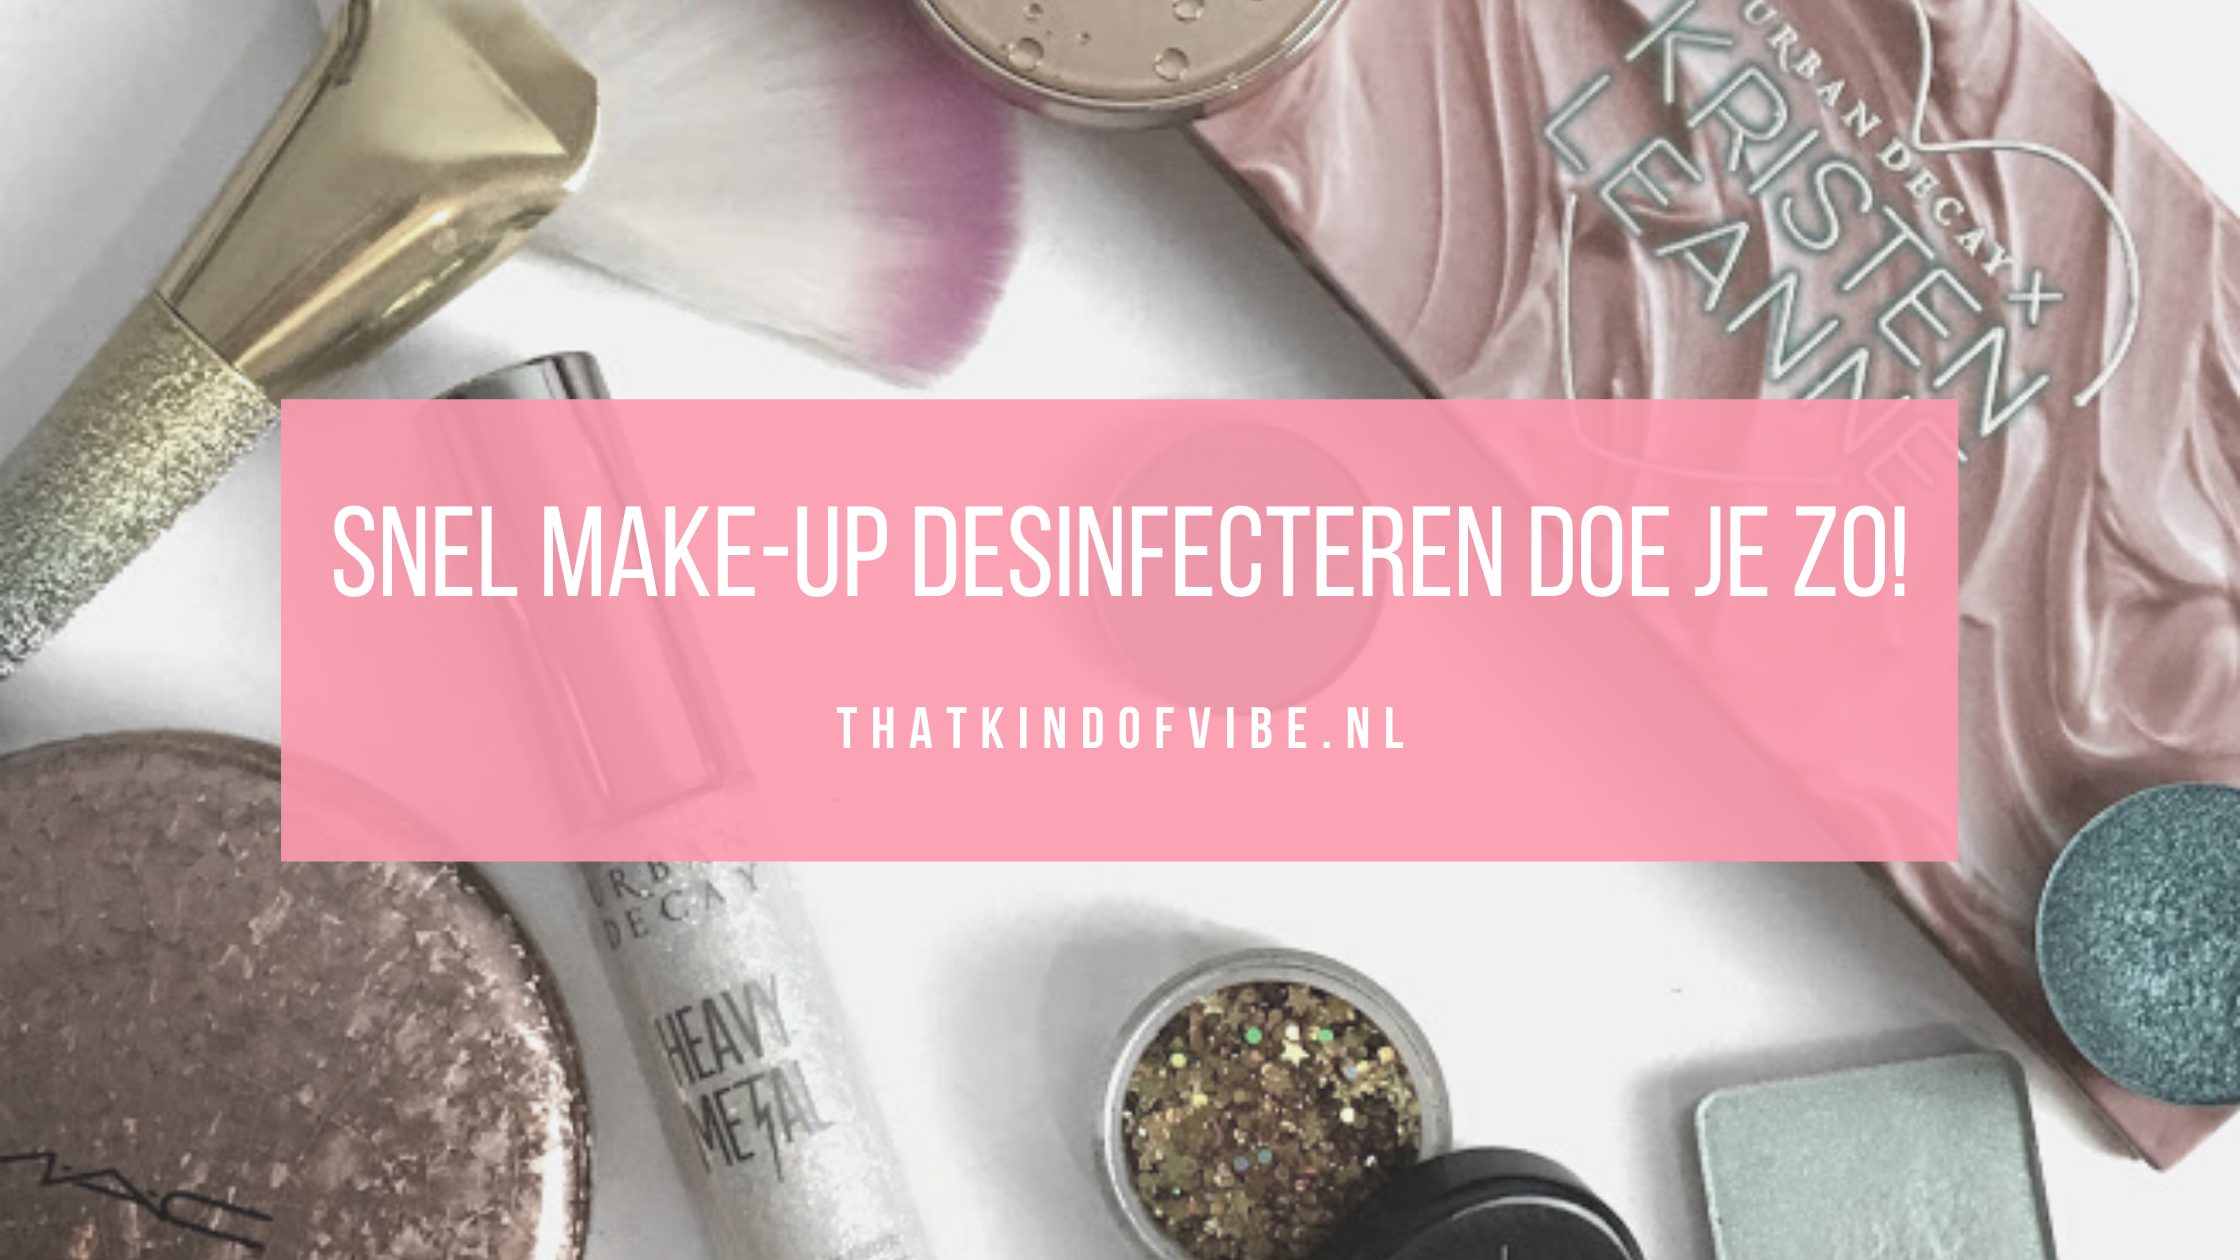 Snel je make-up desinfecteren doe je zo!